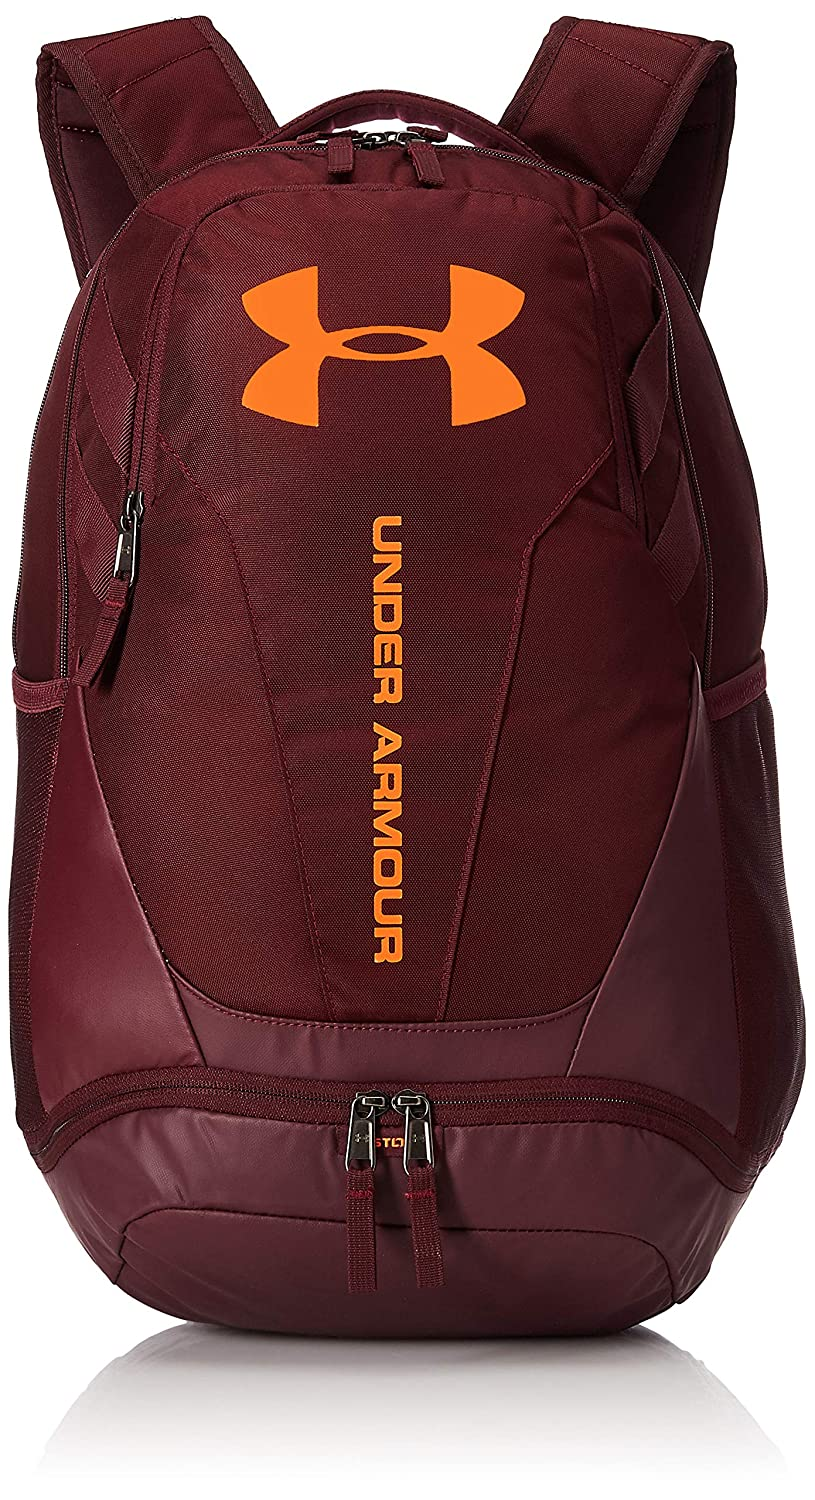 Under Armour Hustle 3.0 Mochila, Unisex Adulto UNDBC|#Under Armour